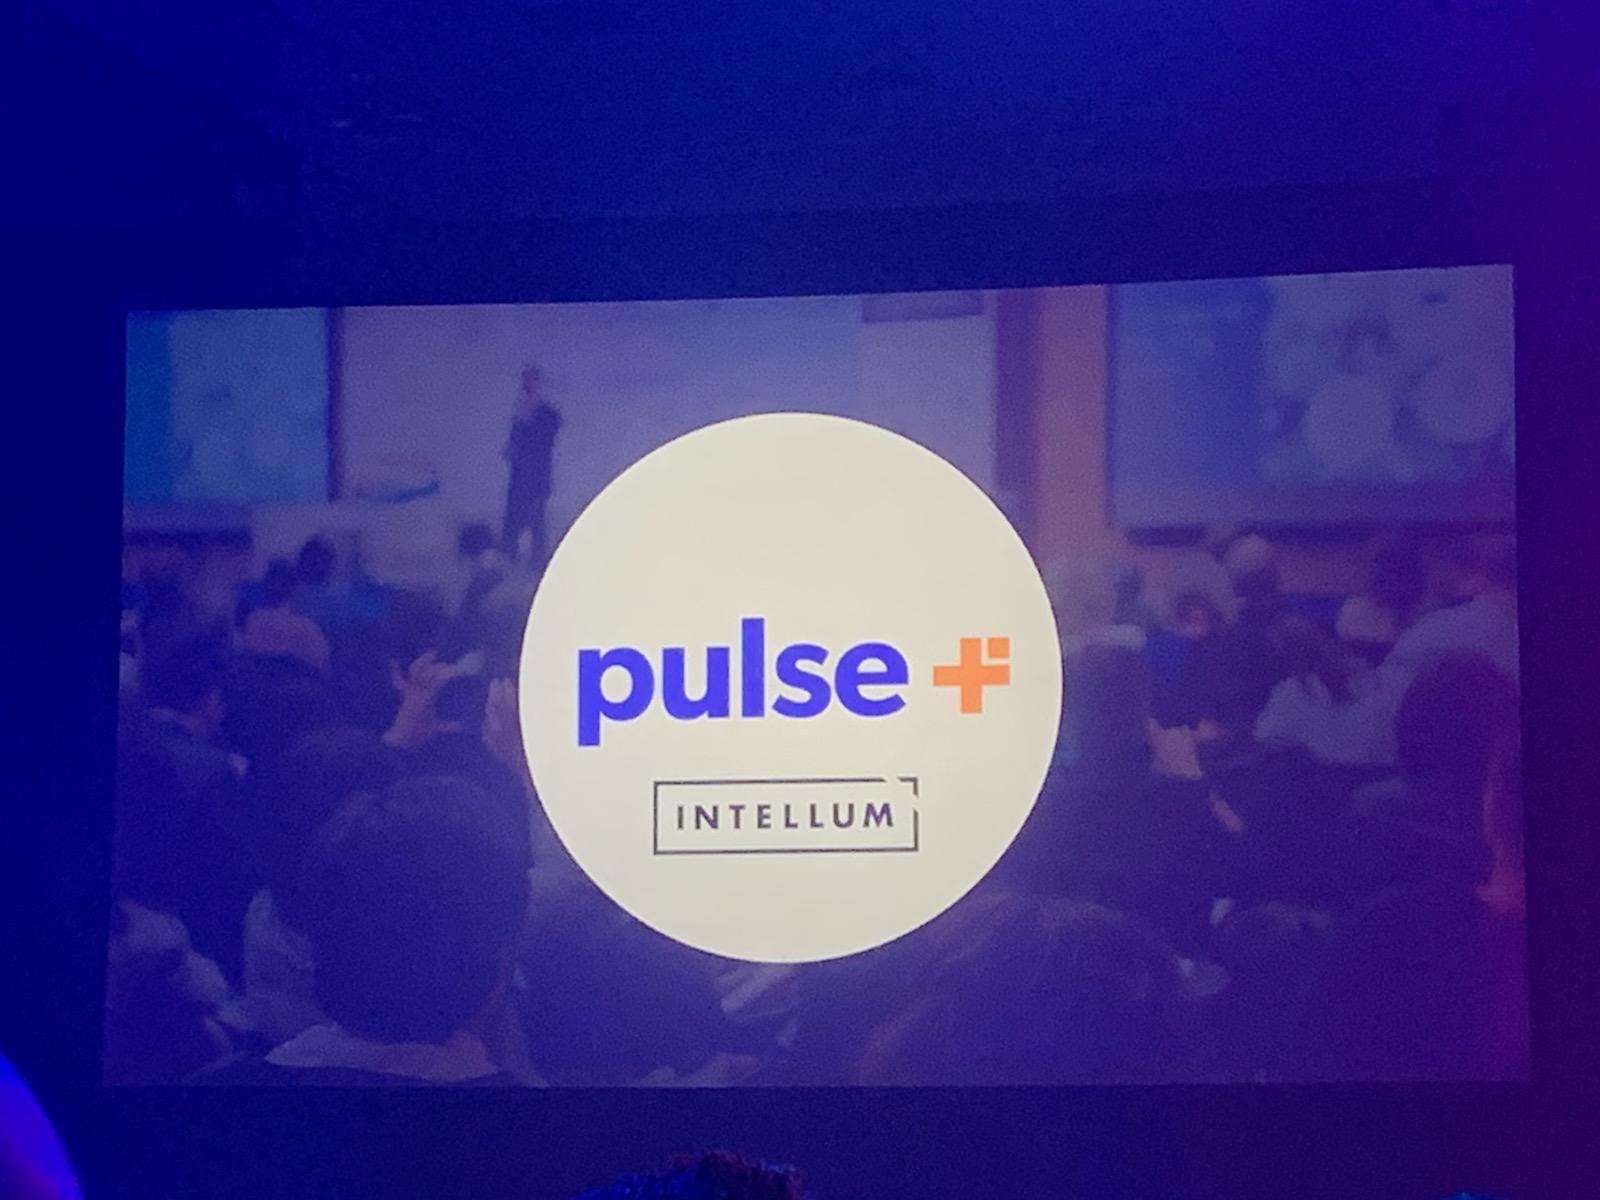 Pulse + & Intellum logos presented together on screen.